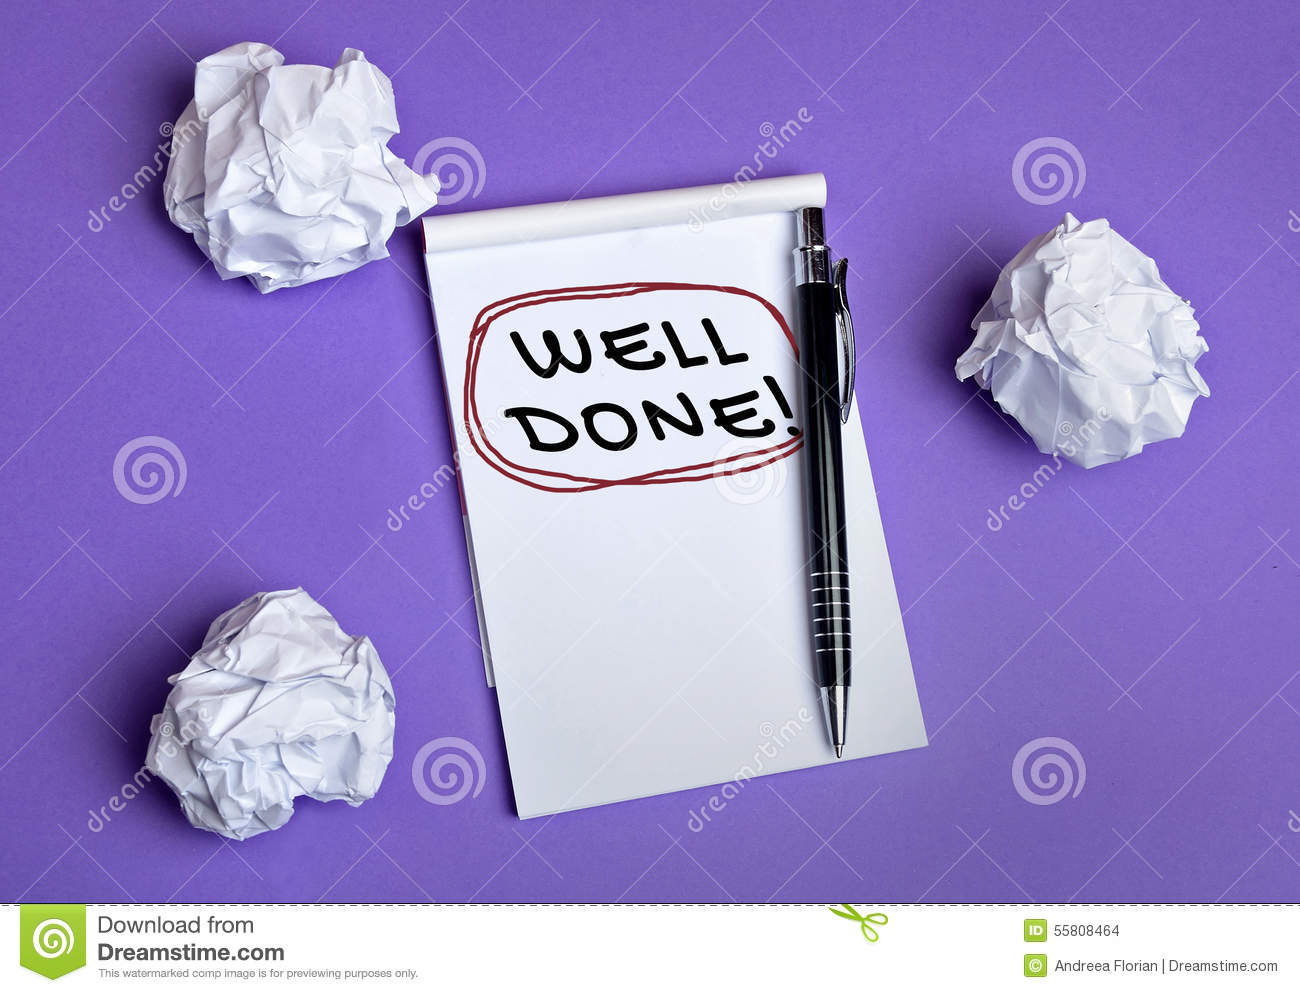 Well done word stock photo image 55808464